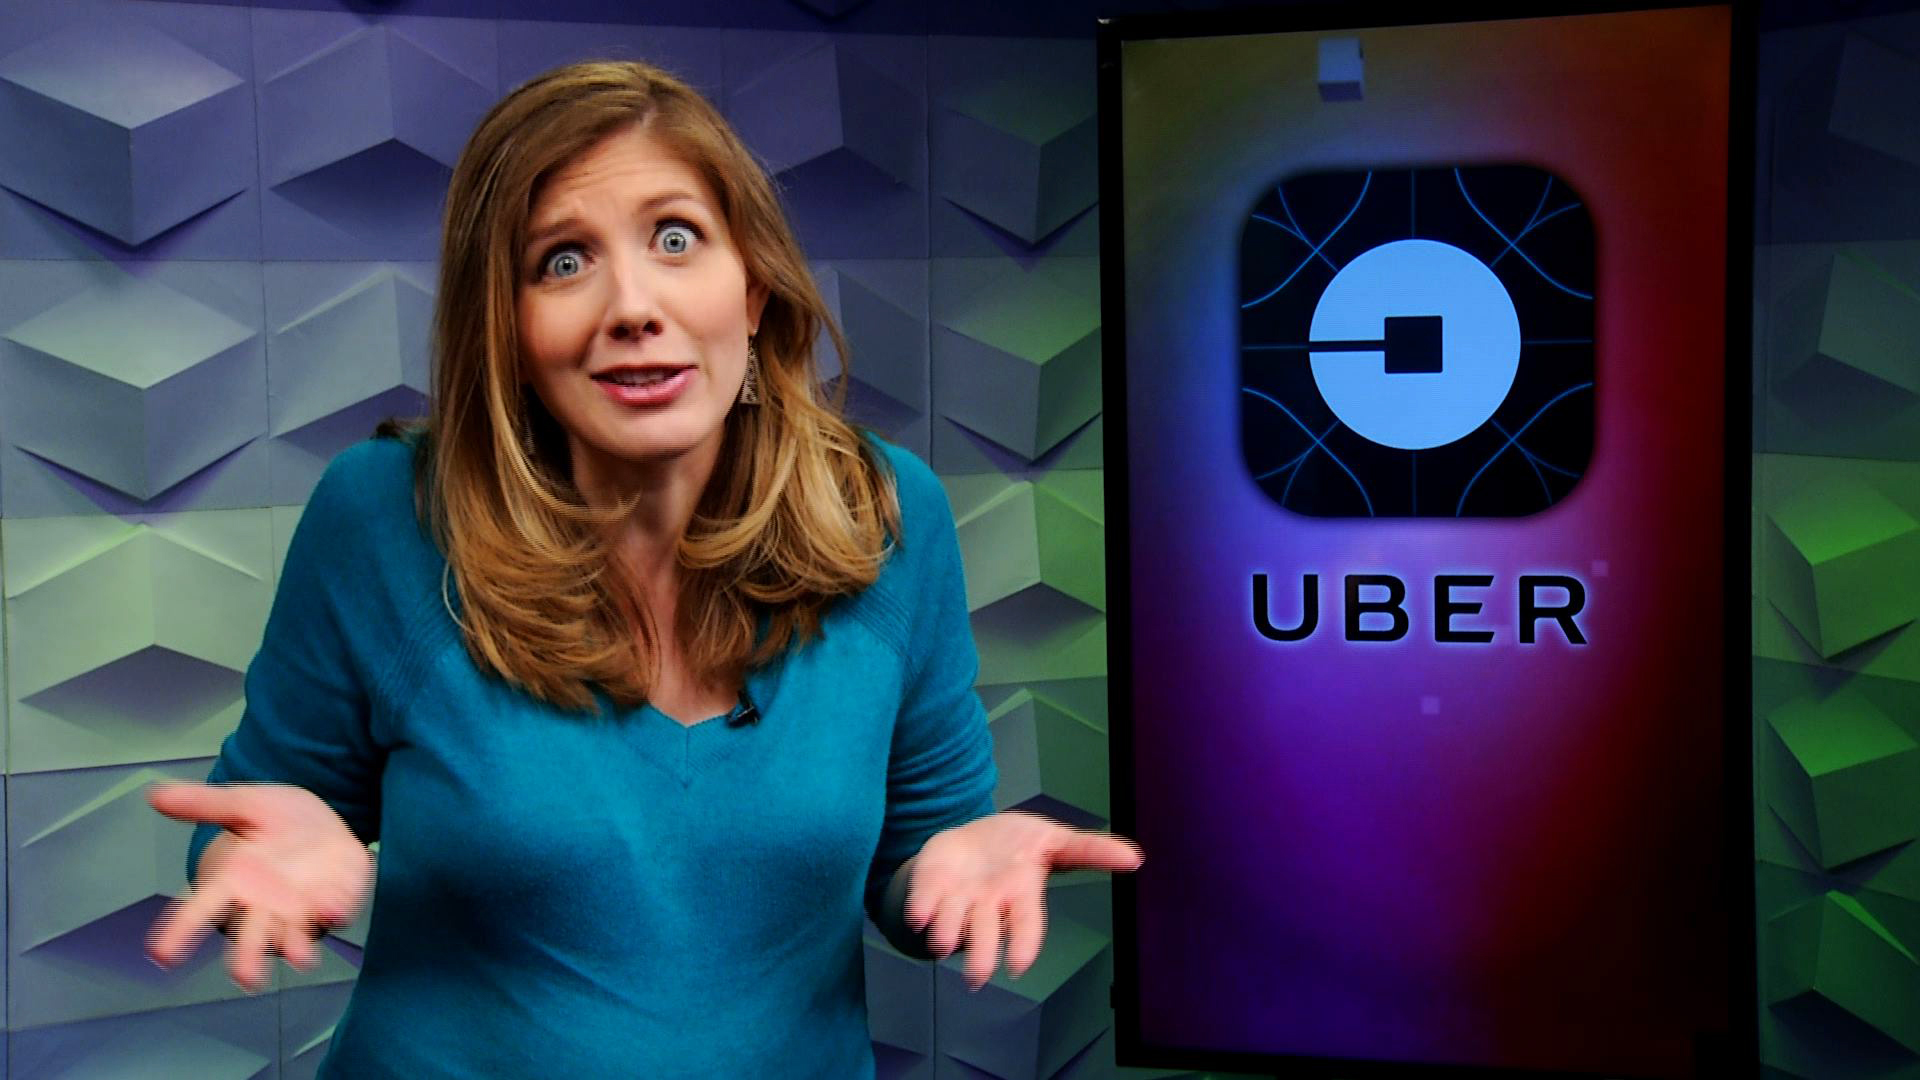 Video: Ride Uber? Better carry cash for tips, or else